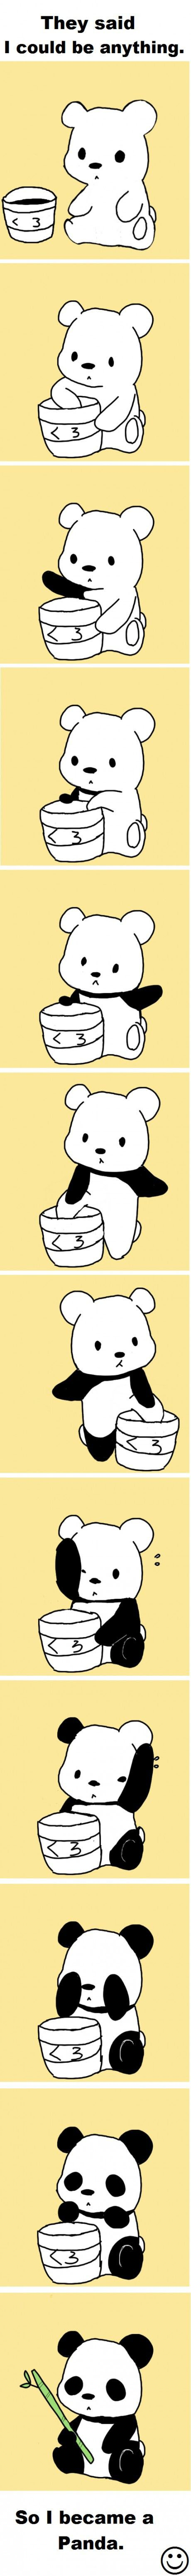 They said I could be anything...: Laughing, Stuff, Funny Pictures, Random, Pandas Bears, Adorable, Humor, Smile, Animal